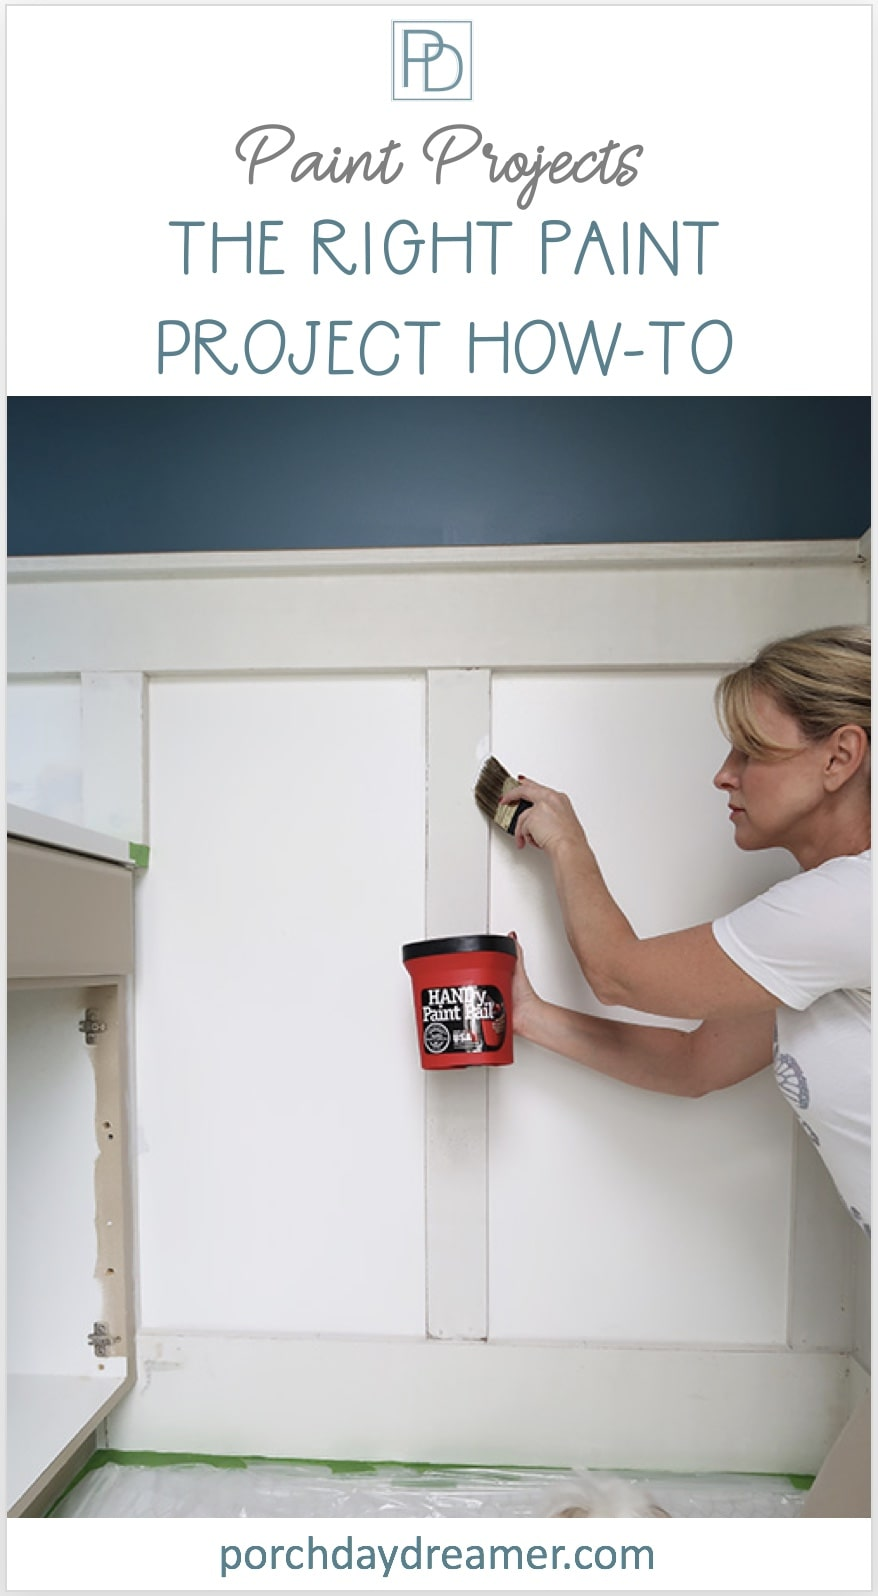 Paint Project Tutorials How-To The Right Paint by Project